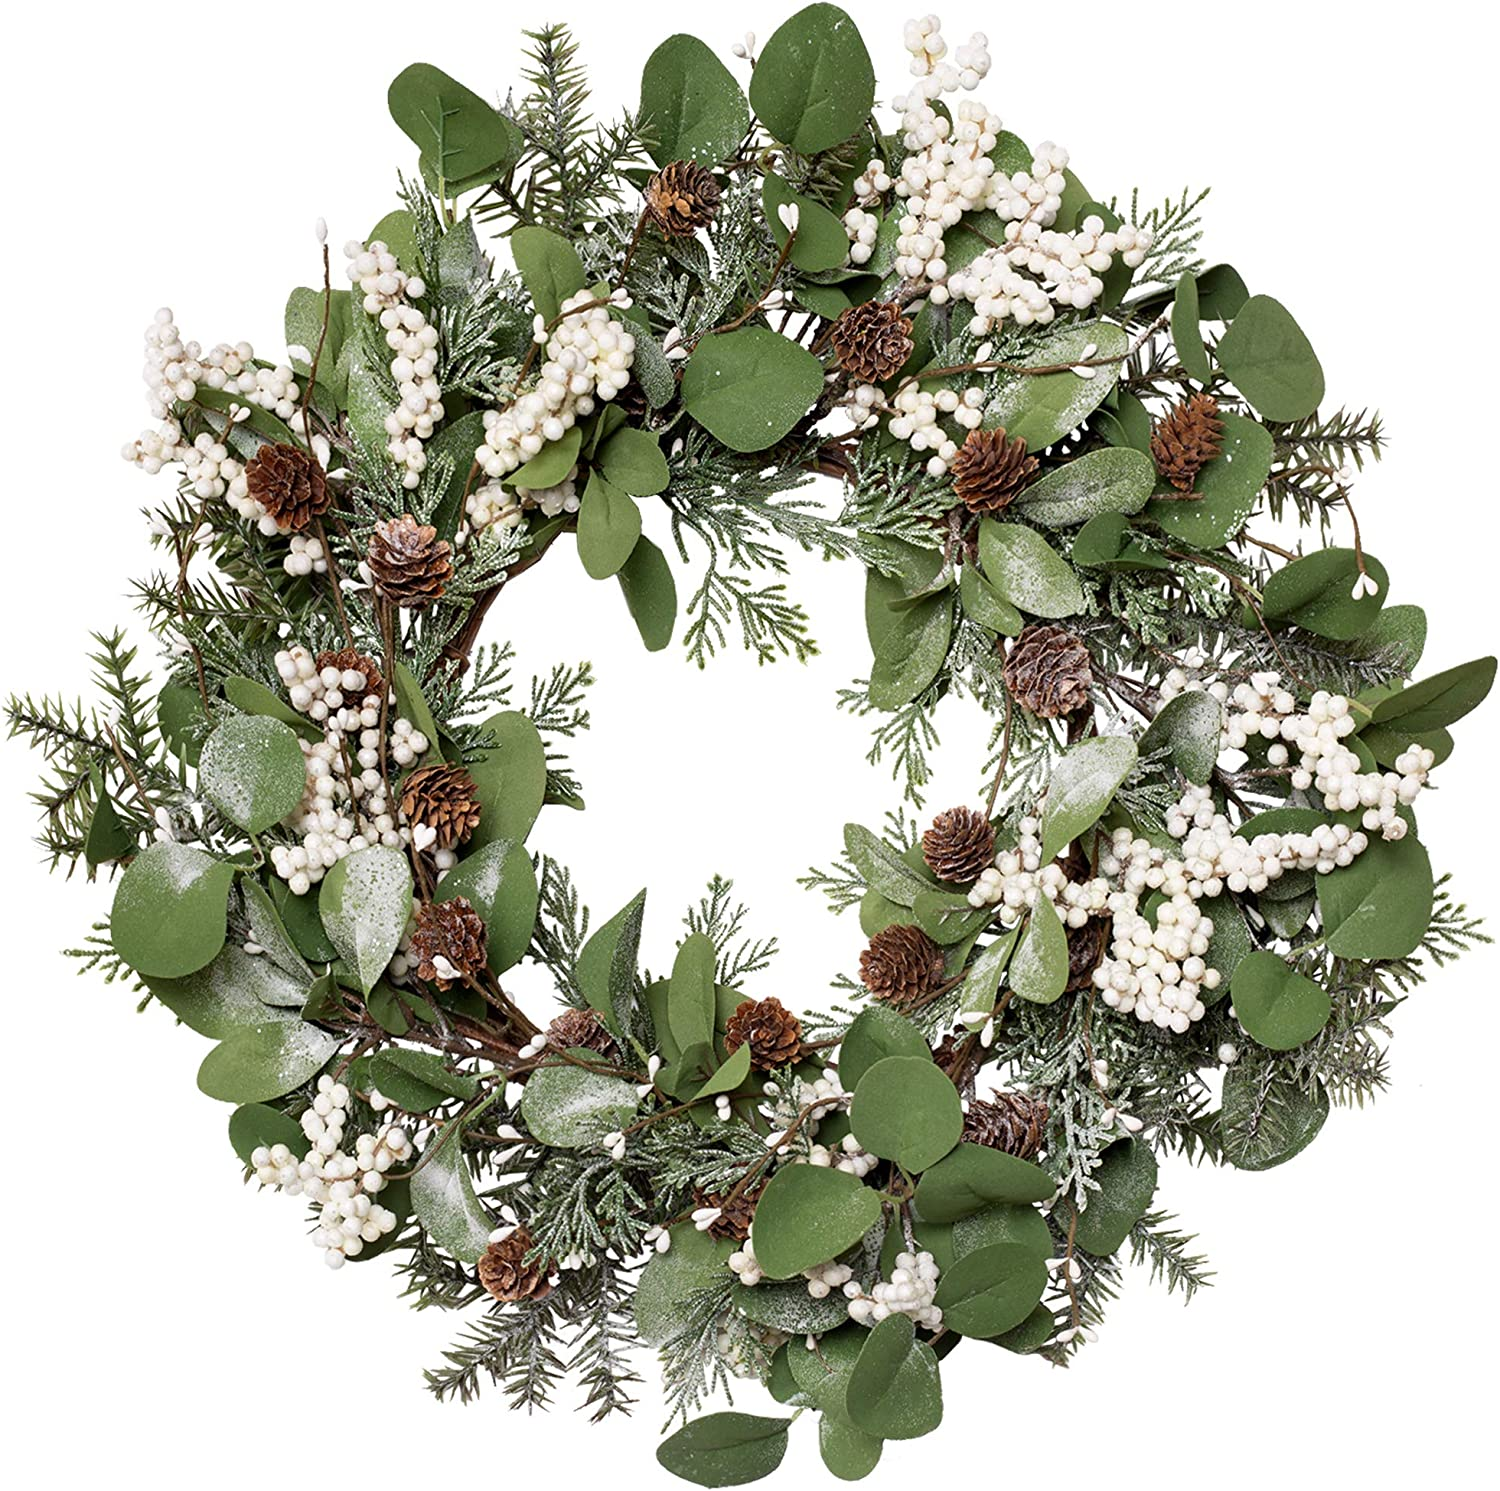 Skrantun 20 Inch Christmas Wreath Winter Wreath for Front Door White Berry Wreath with Pine Branches and Pine Cone Christmas Decorations with Artificial Snow